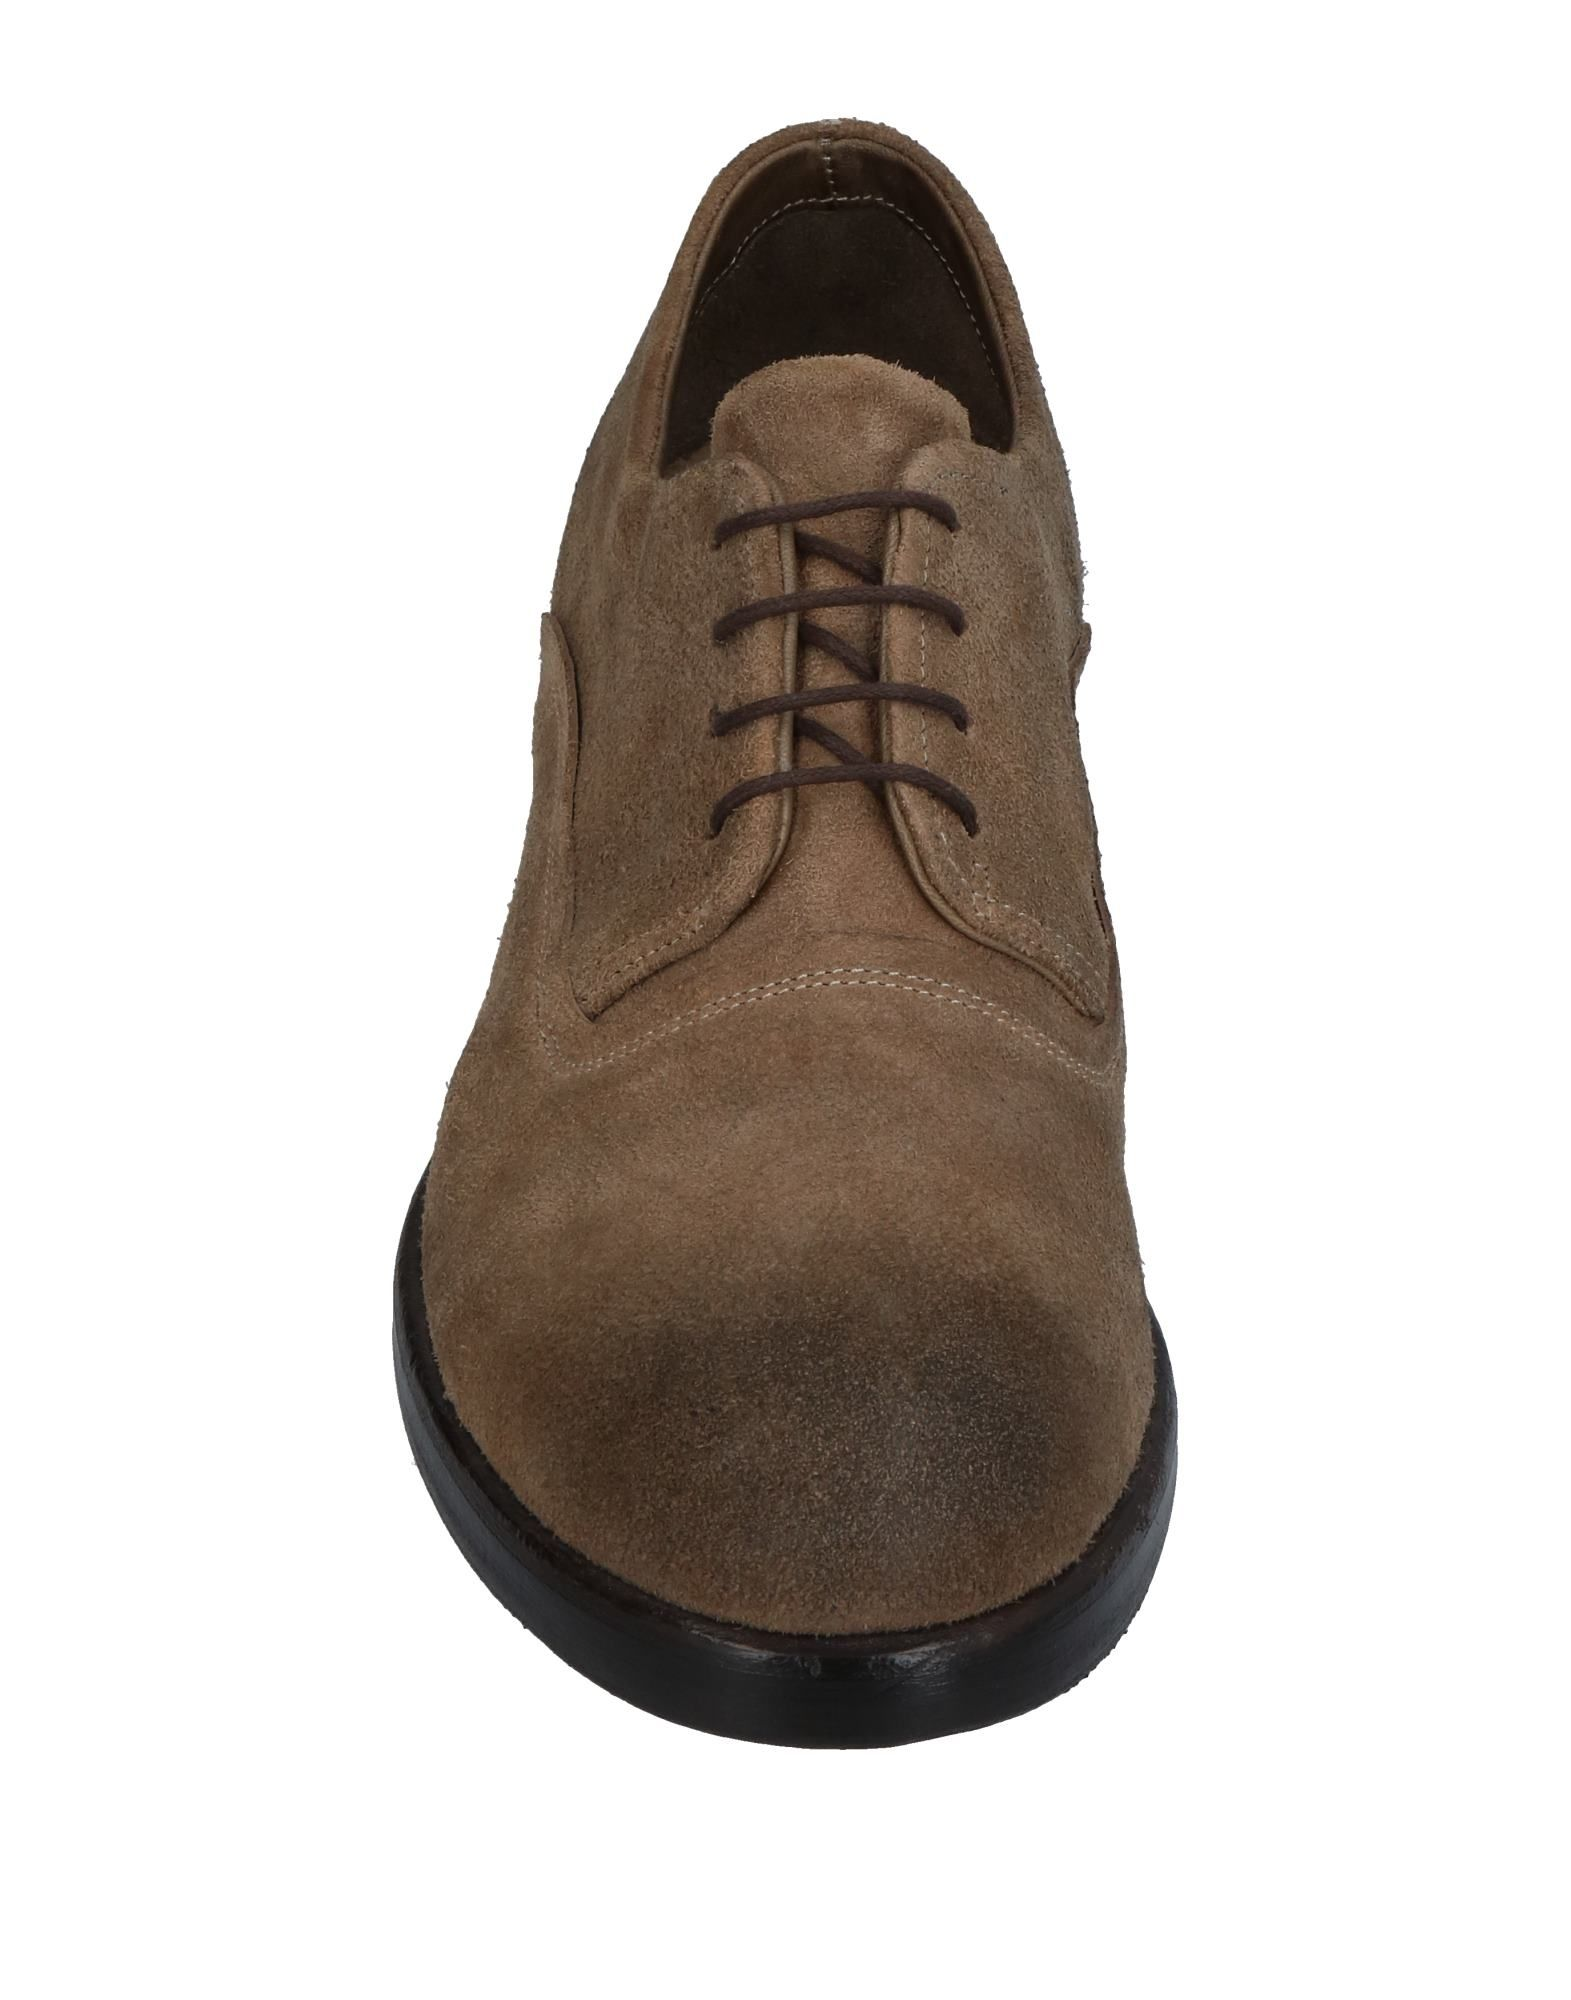 Keep Originals Mokassins 11315756SJ Herren  11315756SJ Mokassins Neue Schuhe e3be5f